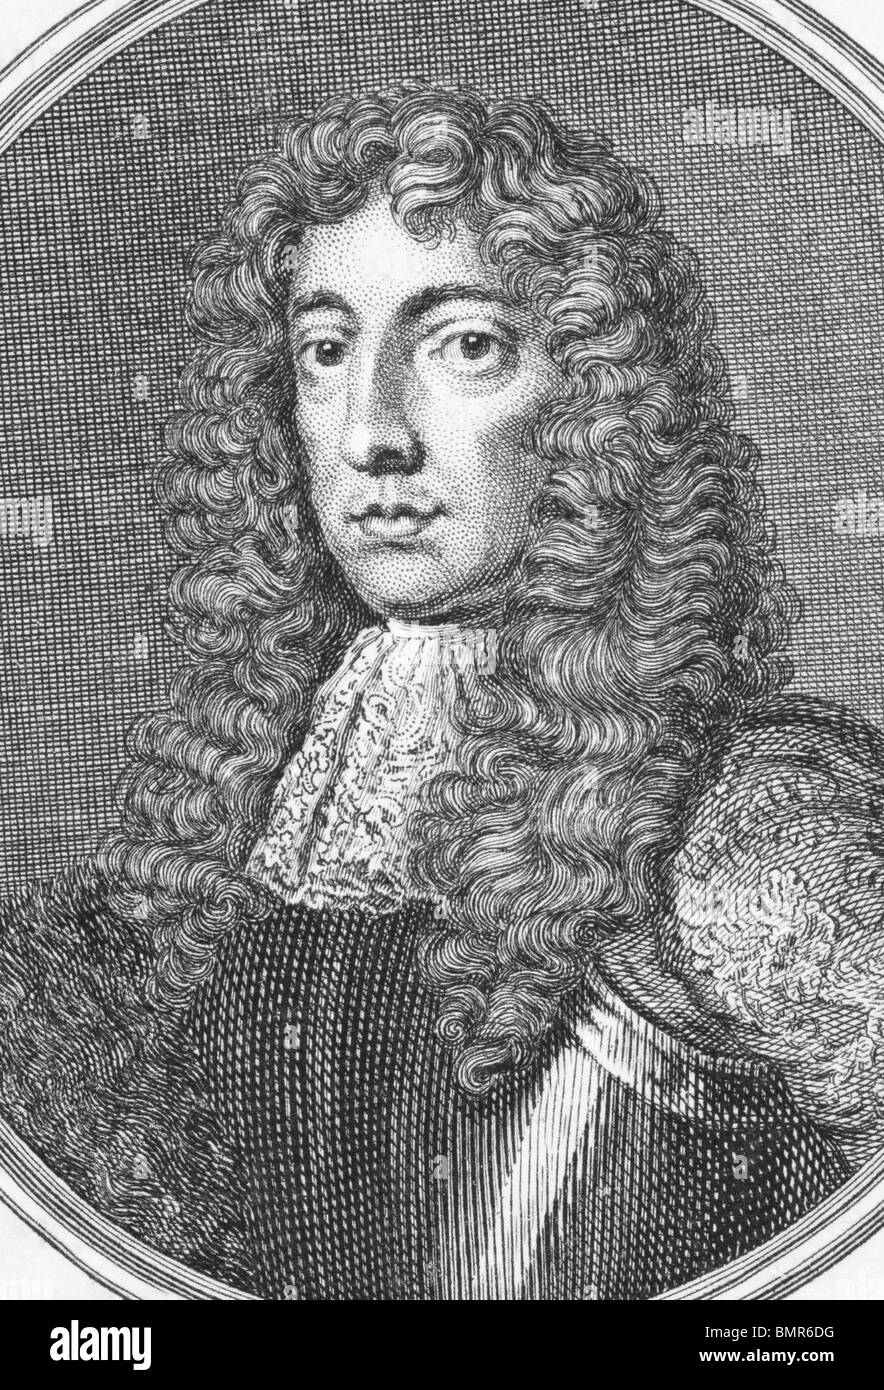 Ashley Cooper, 1st Earl of Shaftesbury (1621-1683) on engraving from the 1800s. English politician. - Stock Image